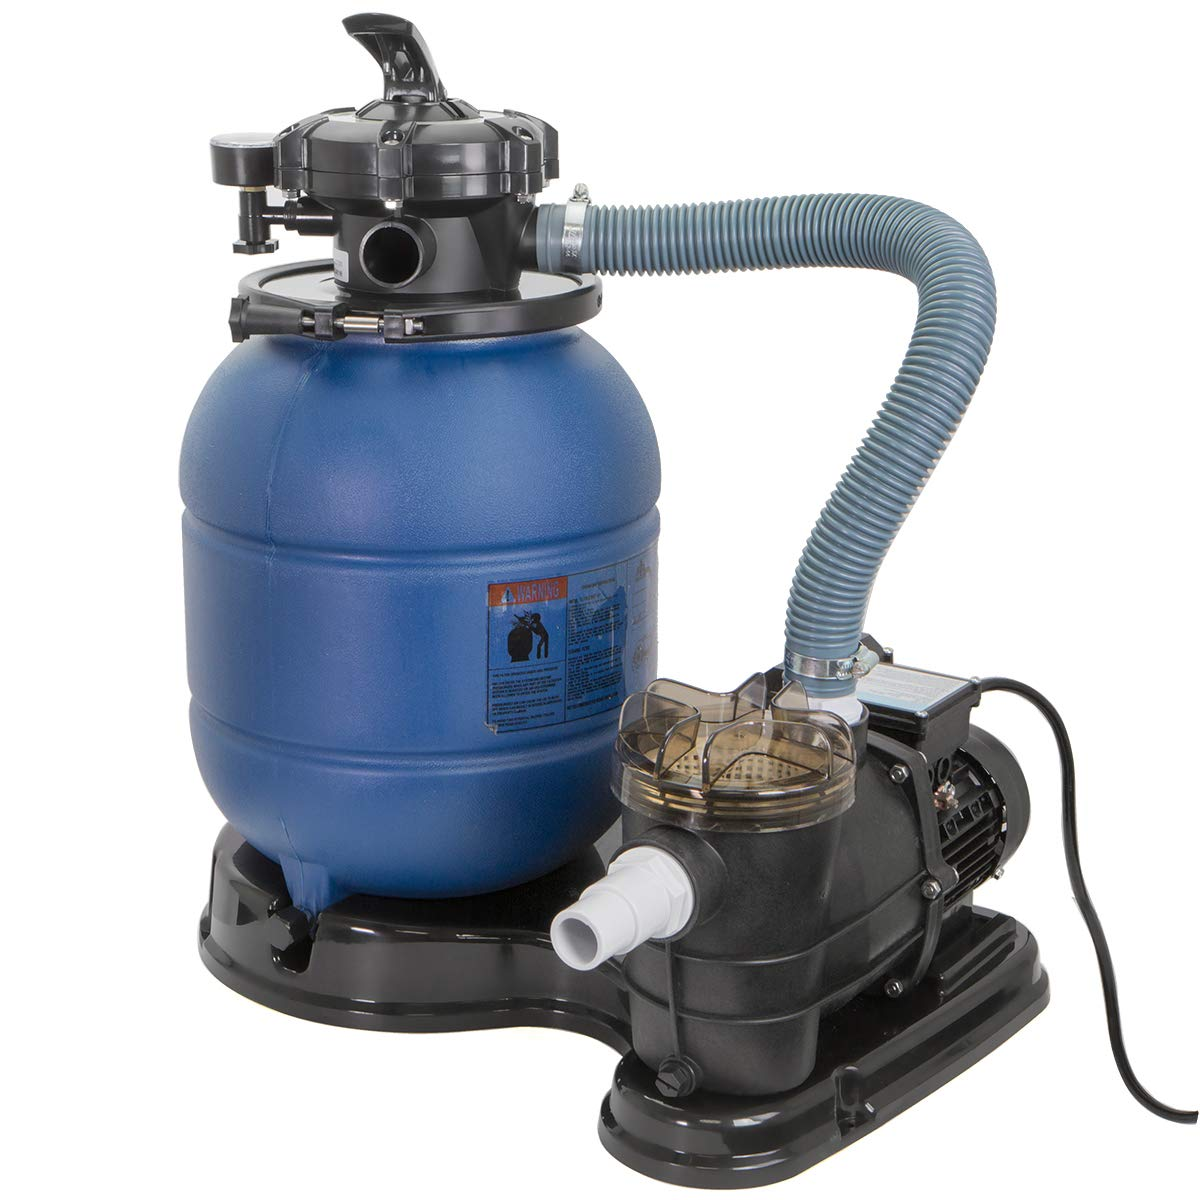 Pro 2400GPH 13'' Sand Filter w/ 3/4HP Water Pump Above Ground Swimming Pool Pump by Generic